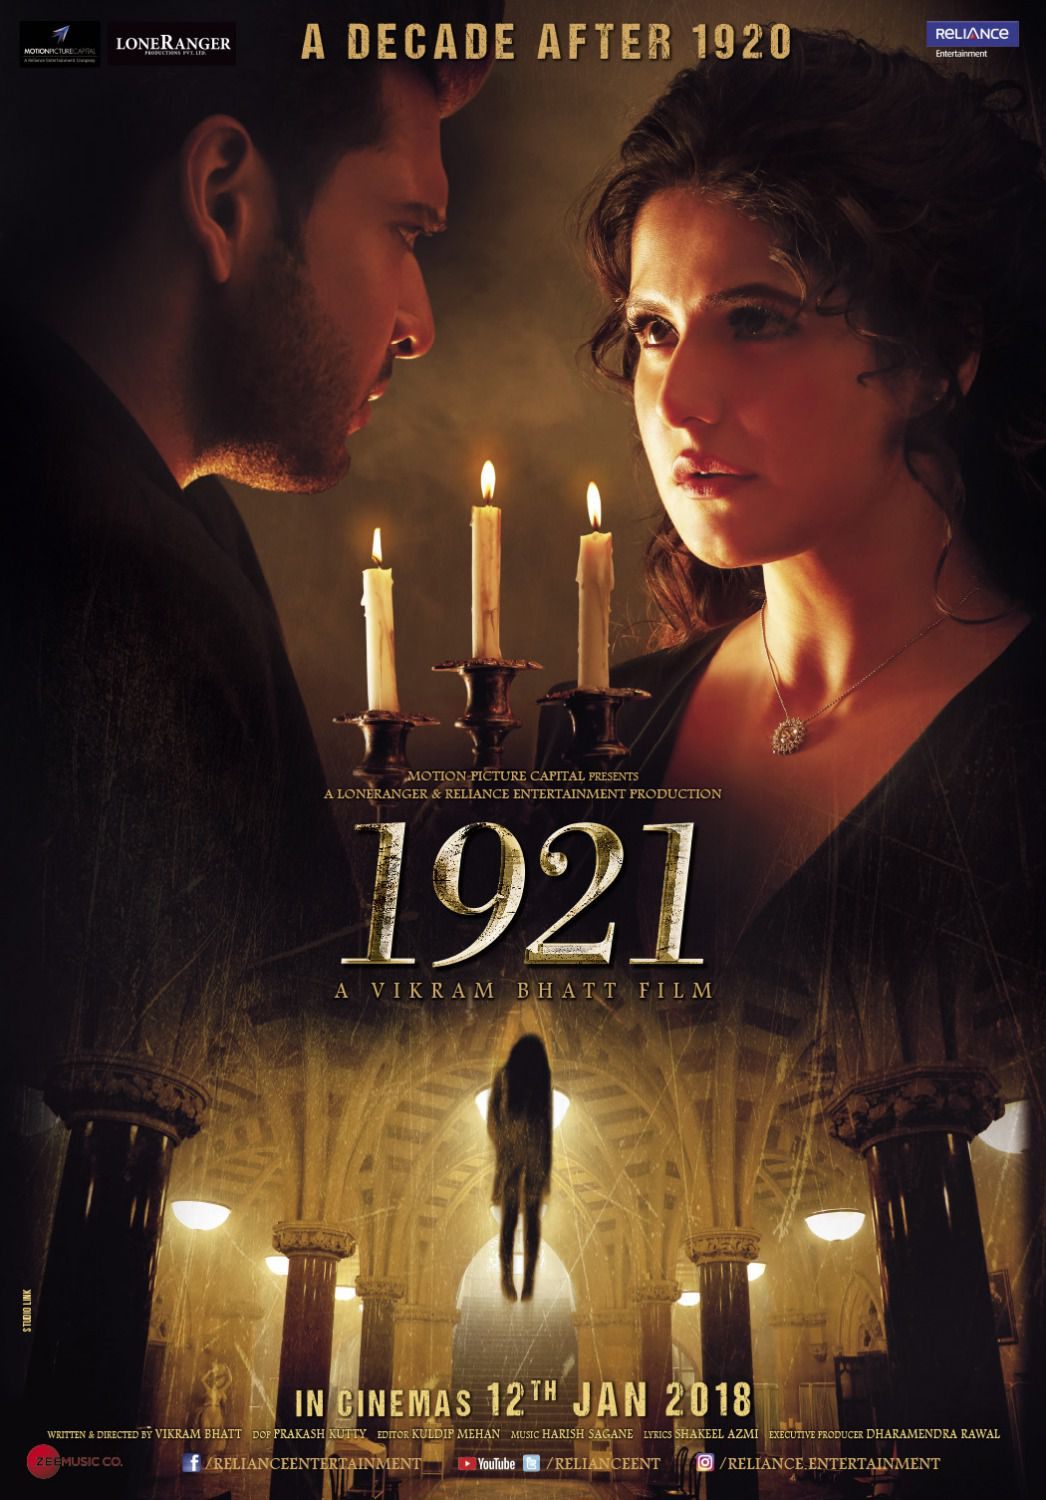 1921 horror film by Vikram Bhatt - film poster